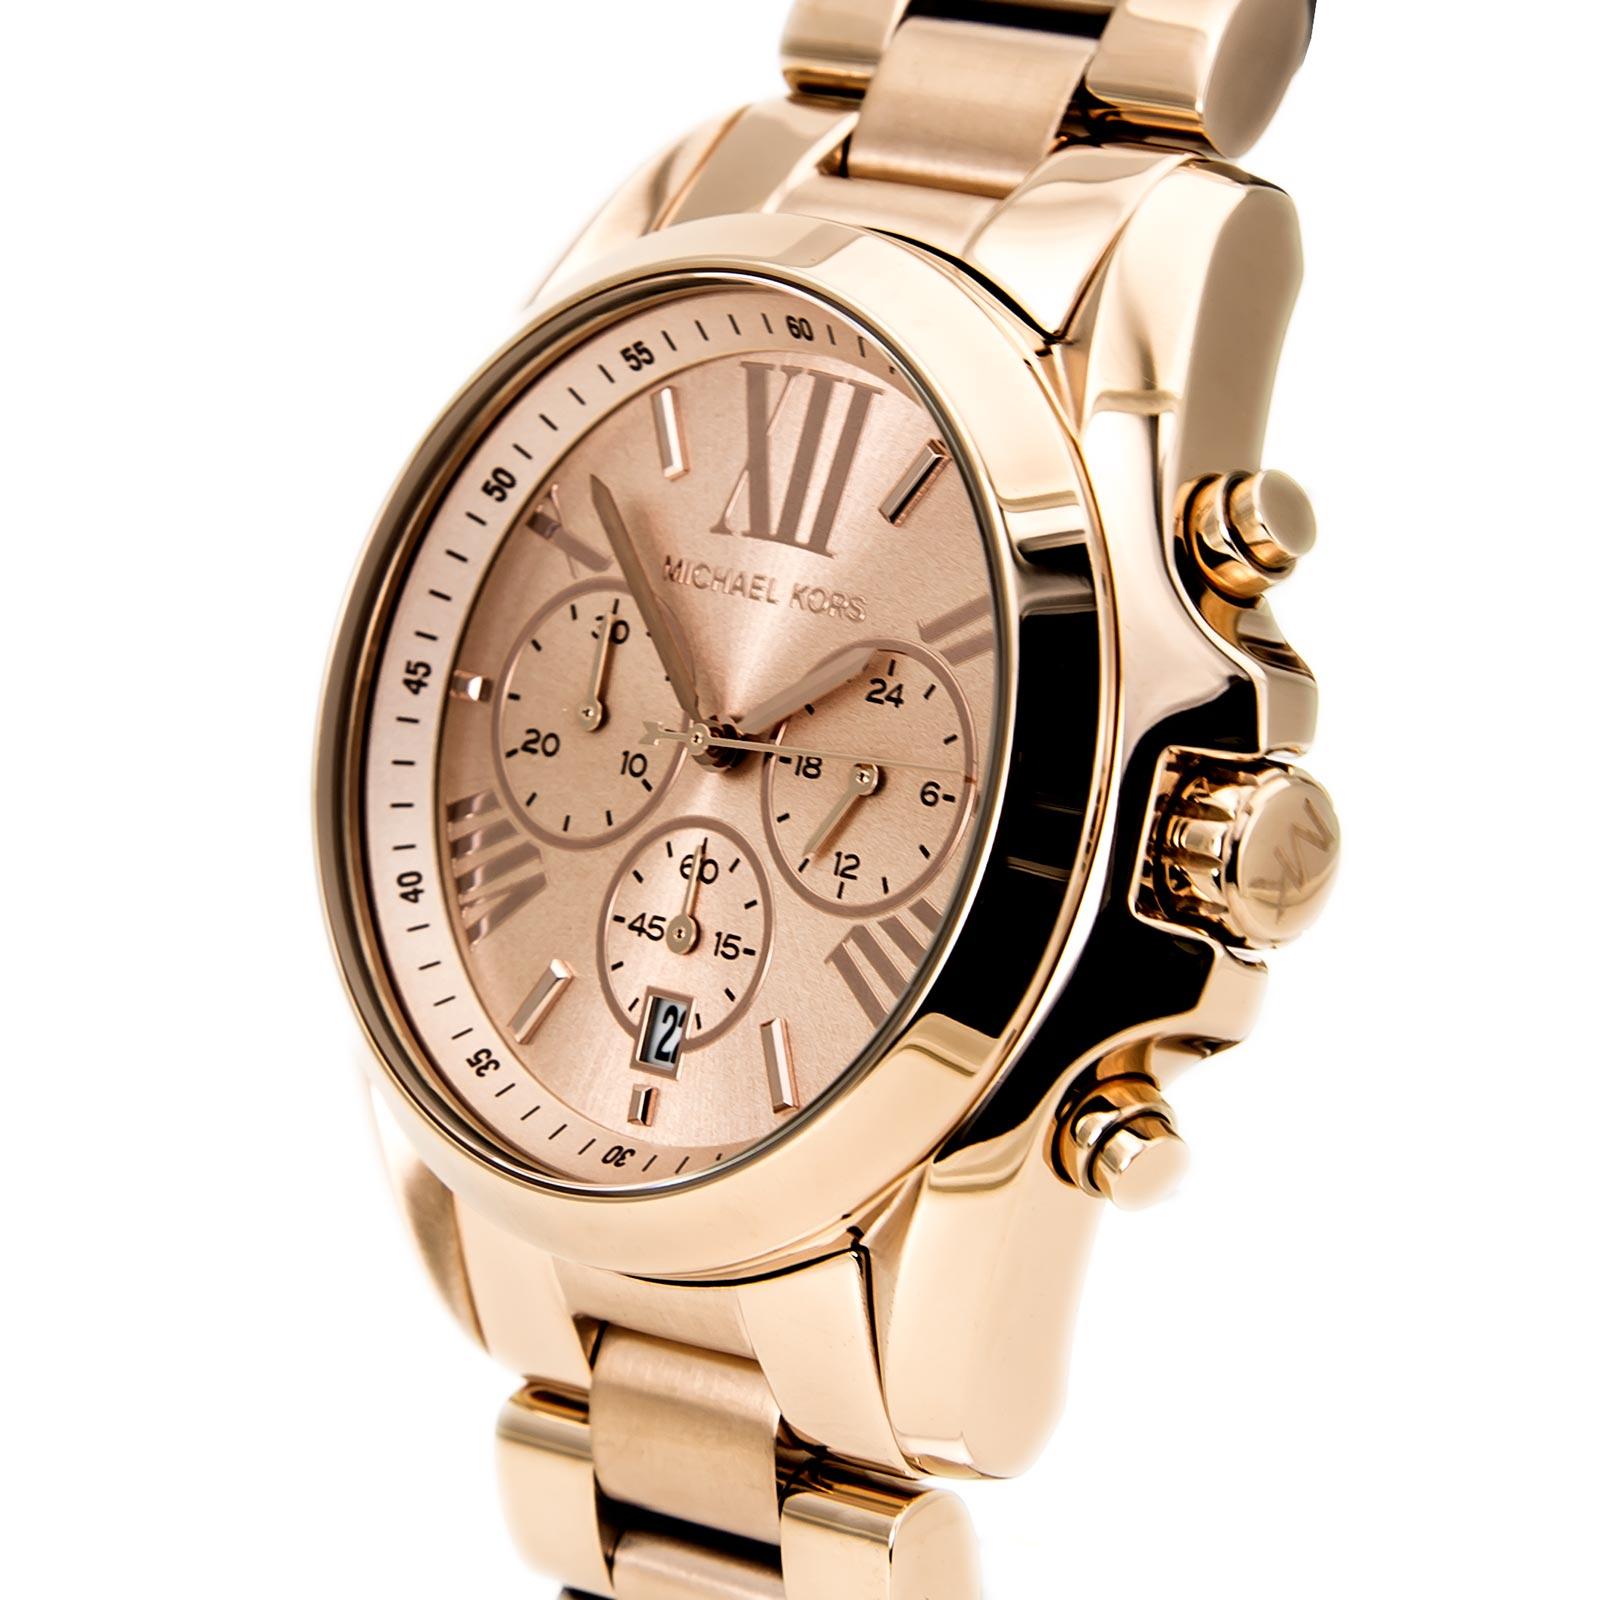 47a2abd15c69a MICHAEL KORS MK5503 LADIES ROSE GOLD BRADSHAW CHRONO WATCH - 2 YEAR ...